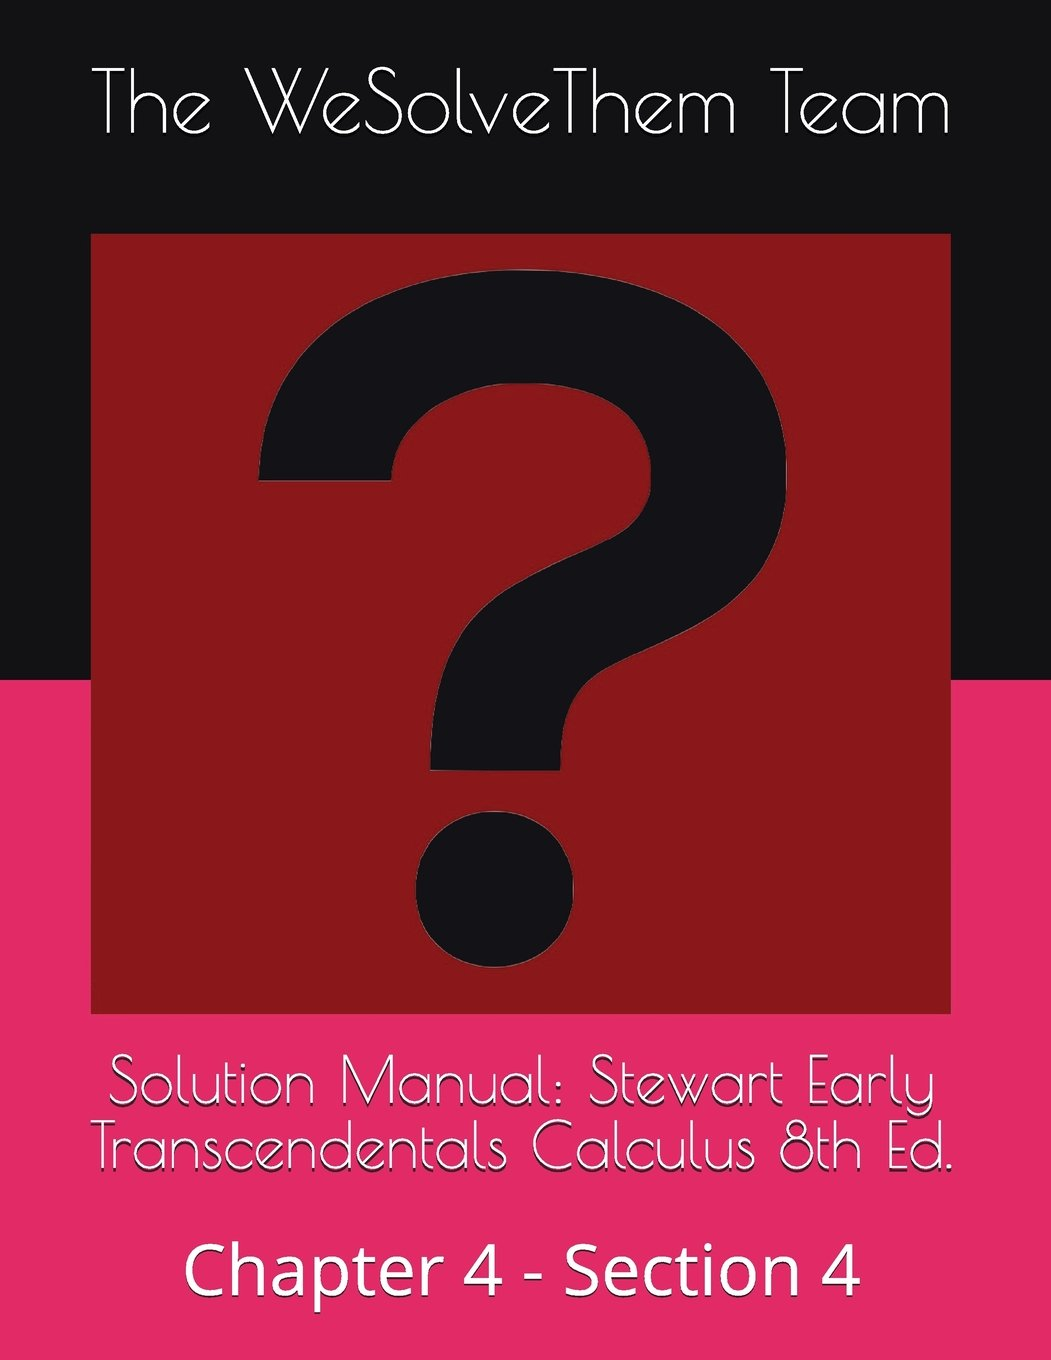 Solution Manual: Stewart Early Transcendentals Calculus 8th Ed.: Chapter 4  - Section 4: Amazon.co.uk: The WeSolveThem Team: 9781717860989: Books